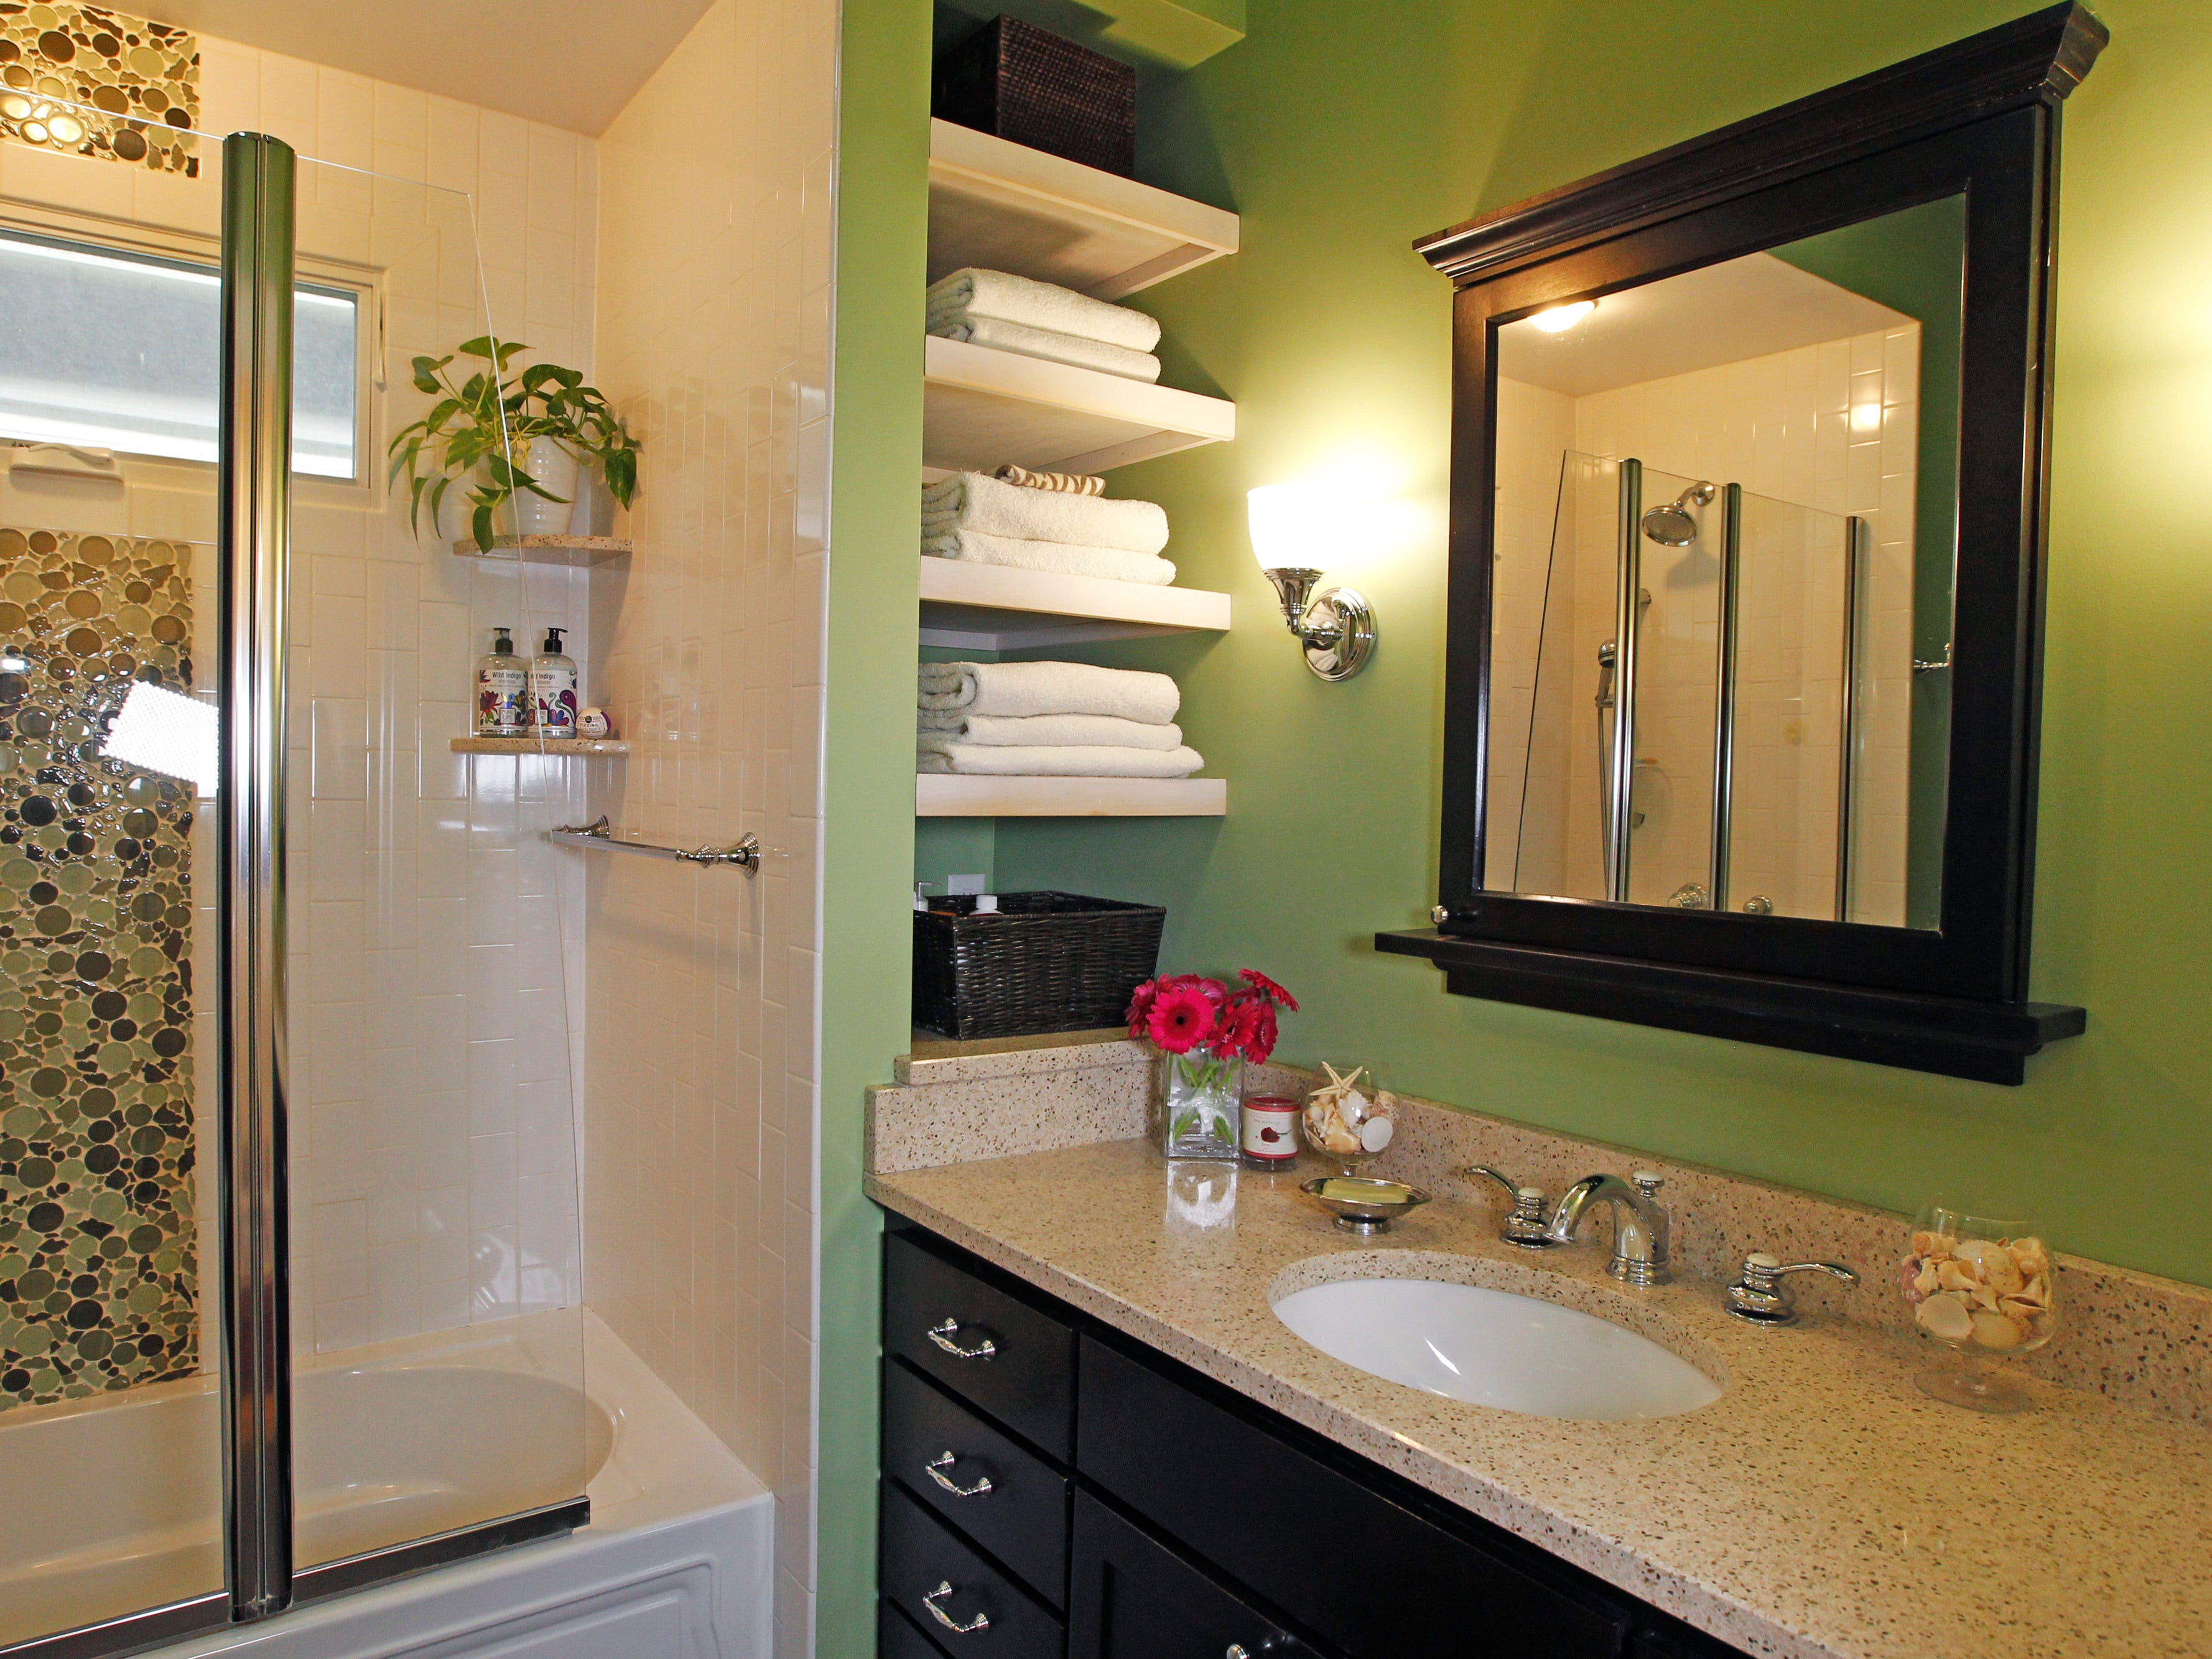 The bathroom was remodeled in 2010. The countertop is made from a mixture of recycled materials.